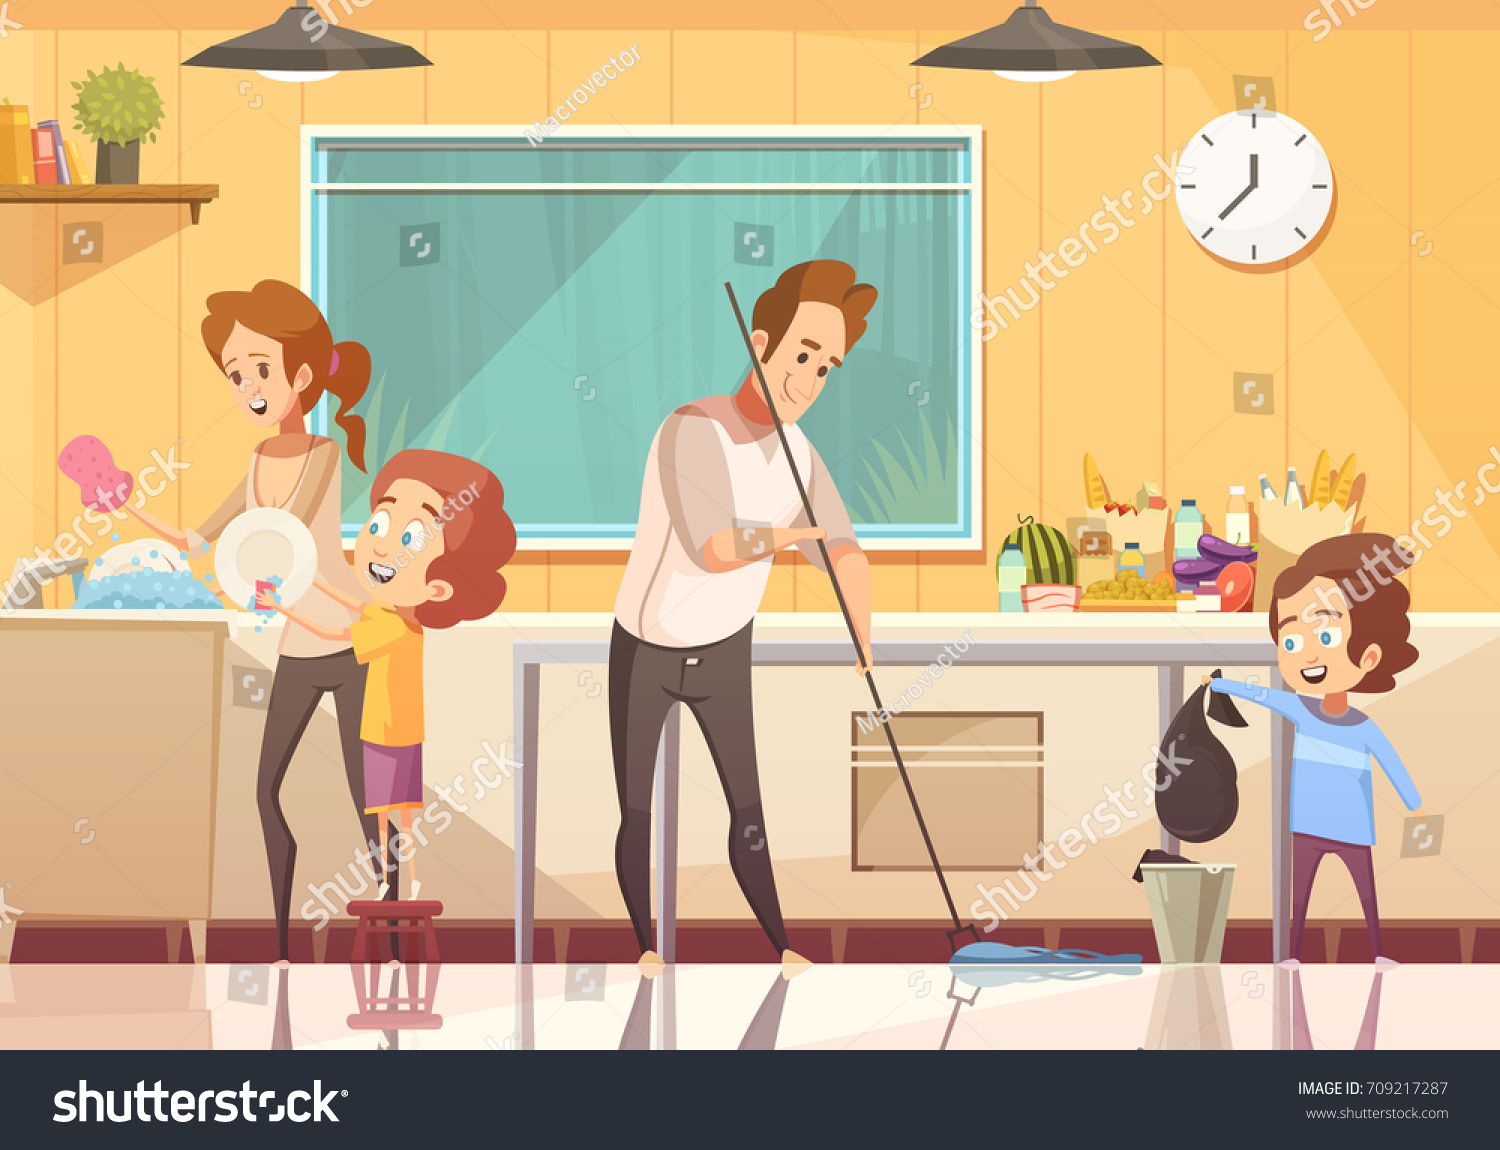 kids helping parents cleaning kitchen retro stock vector. Black Bedroom Furniture Sets. Home Design Ideas